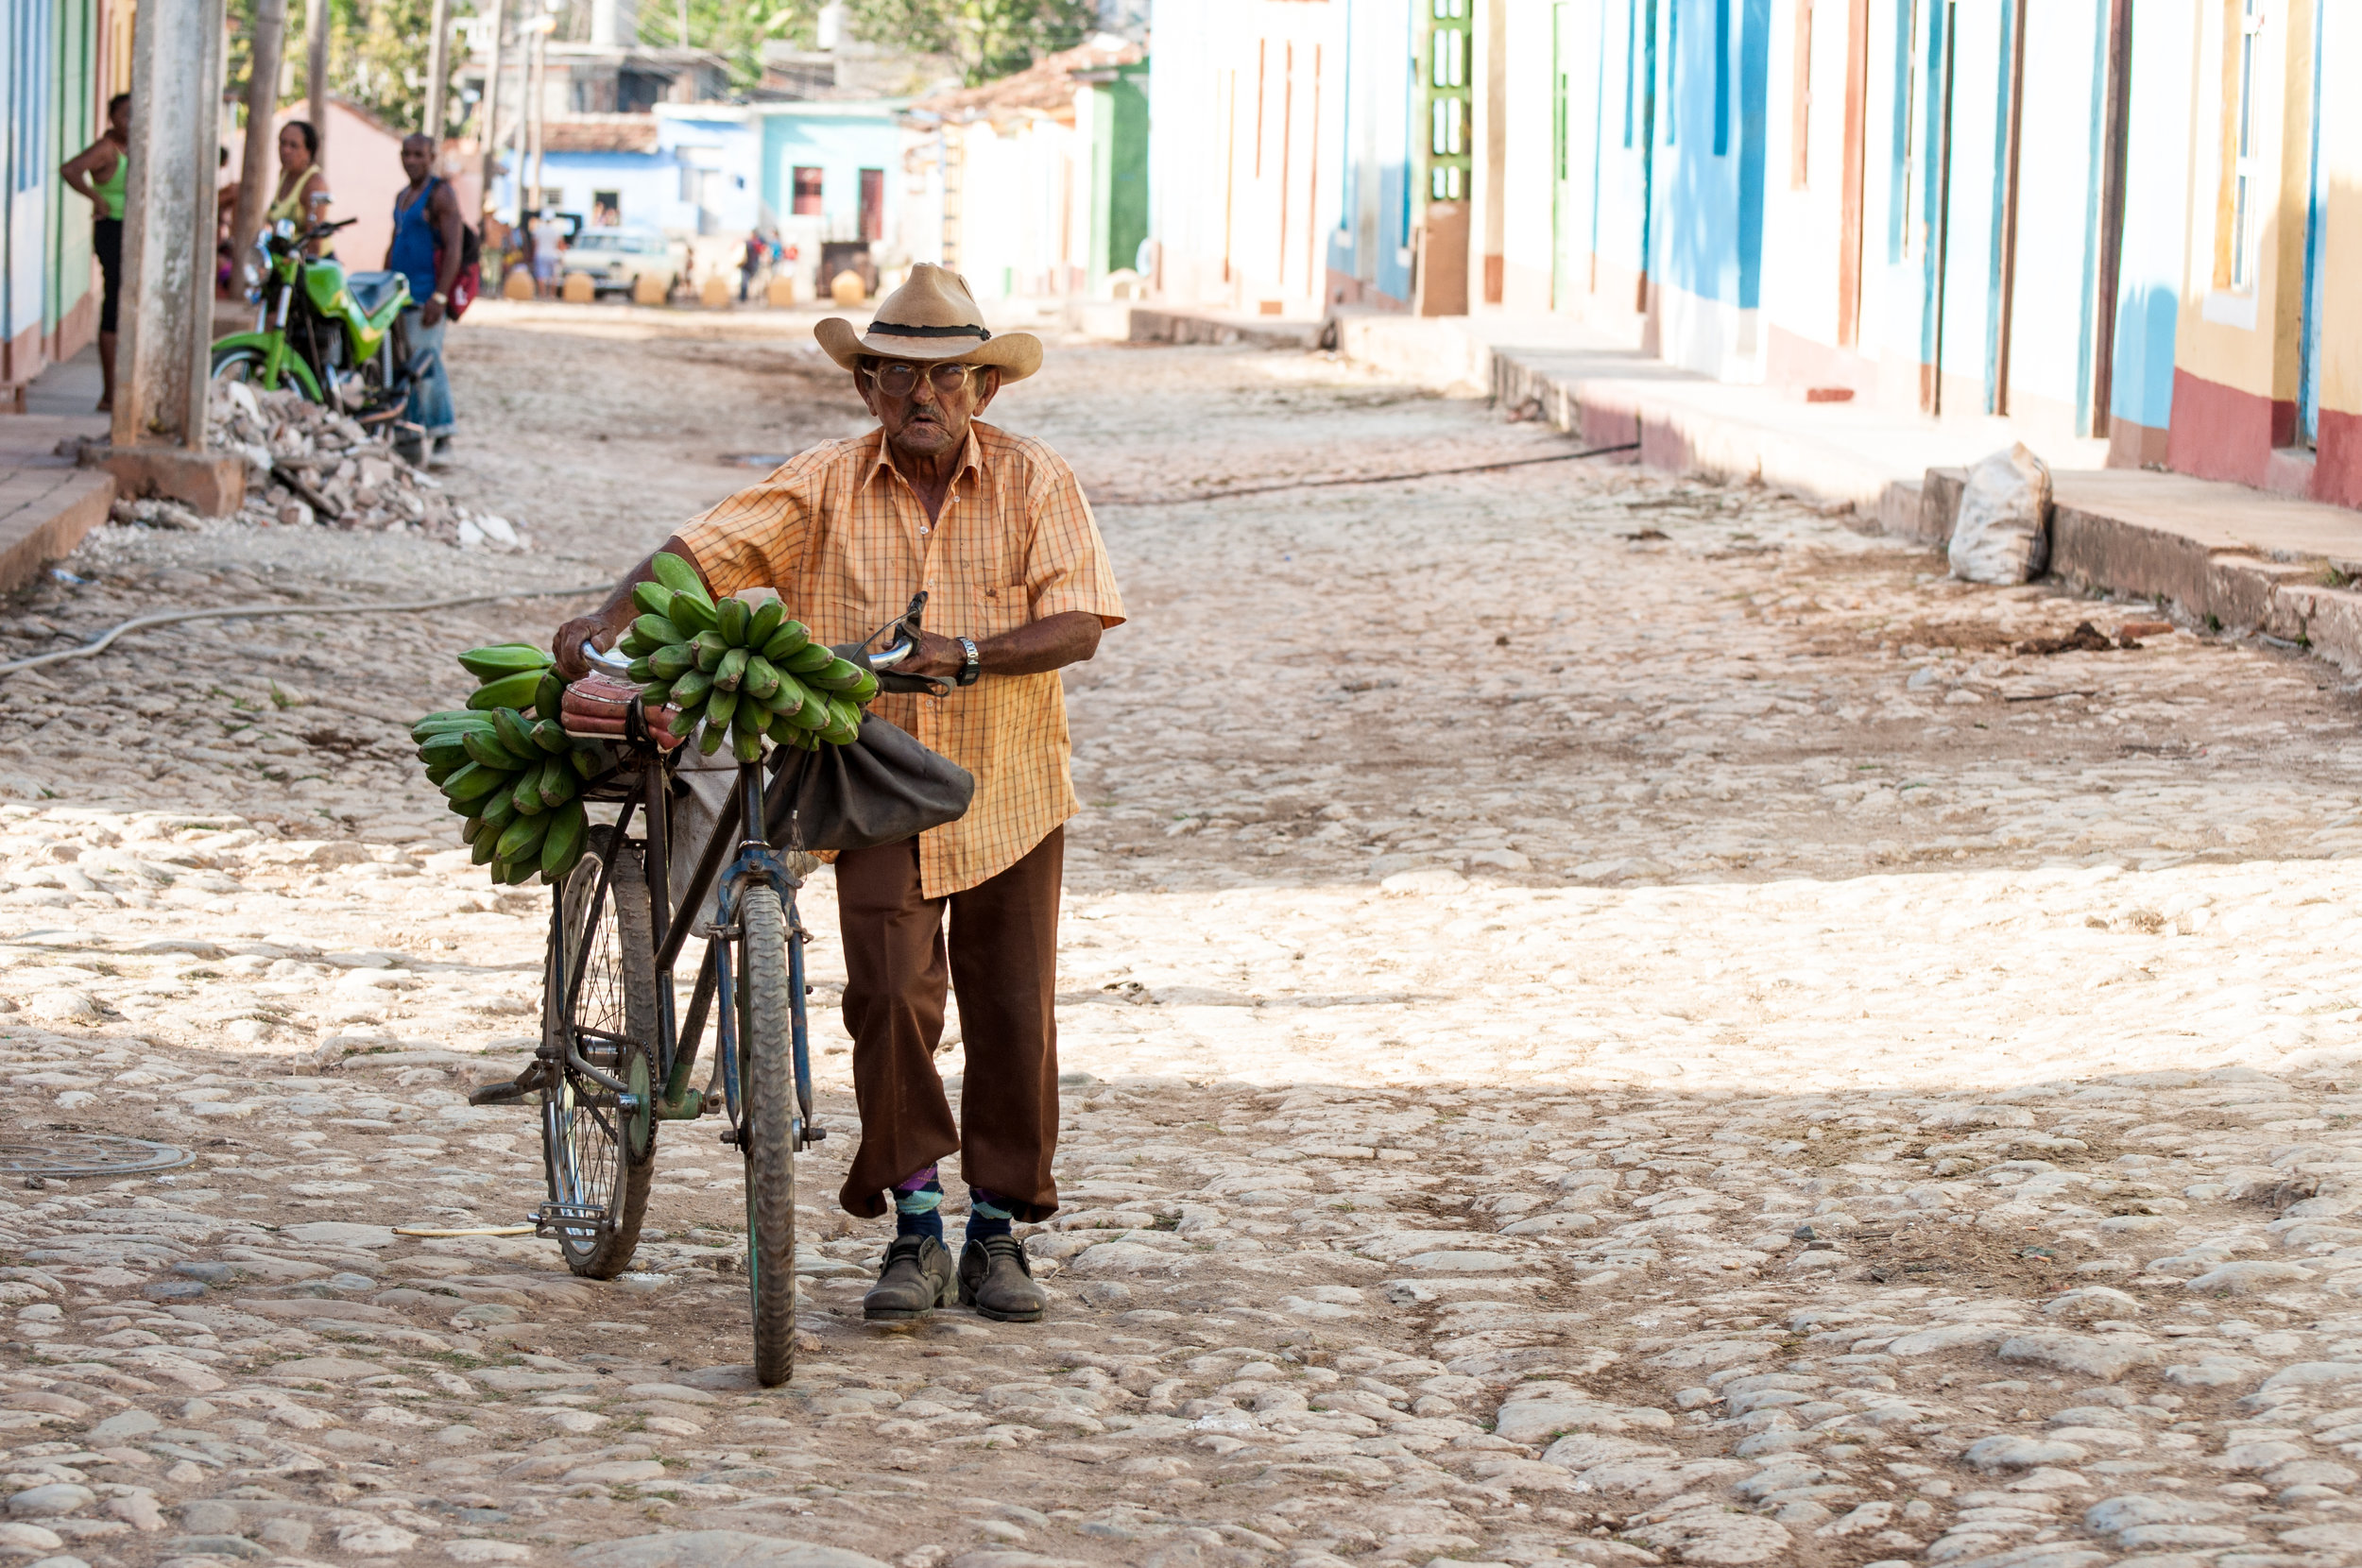 Much of Cuba's produce is sold via bicycle, pushcart, or horse cart